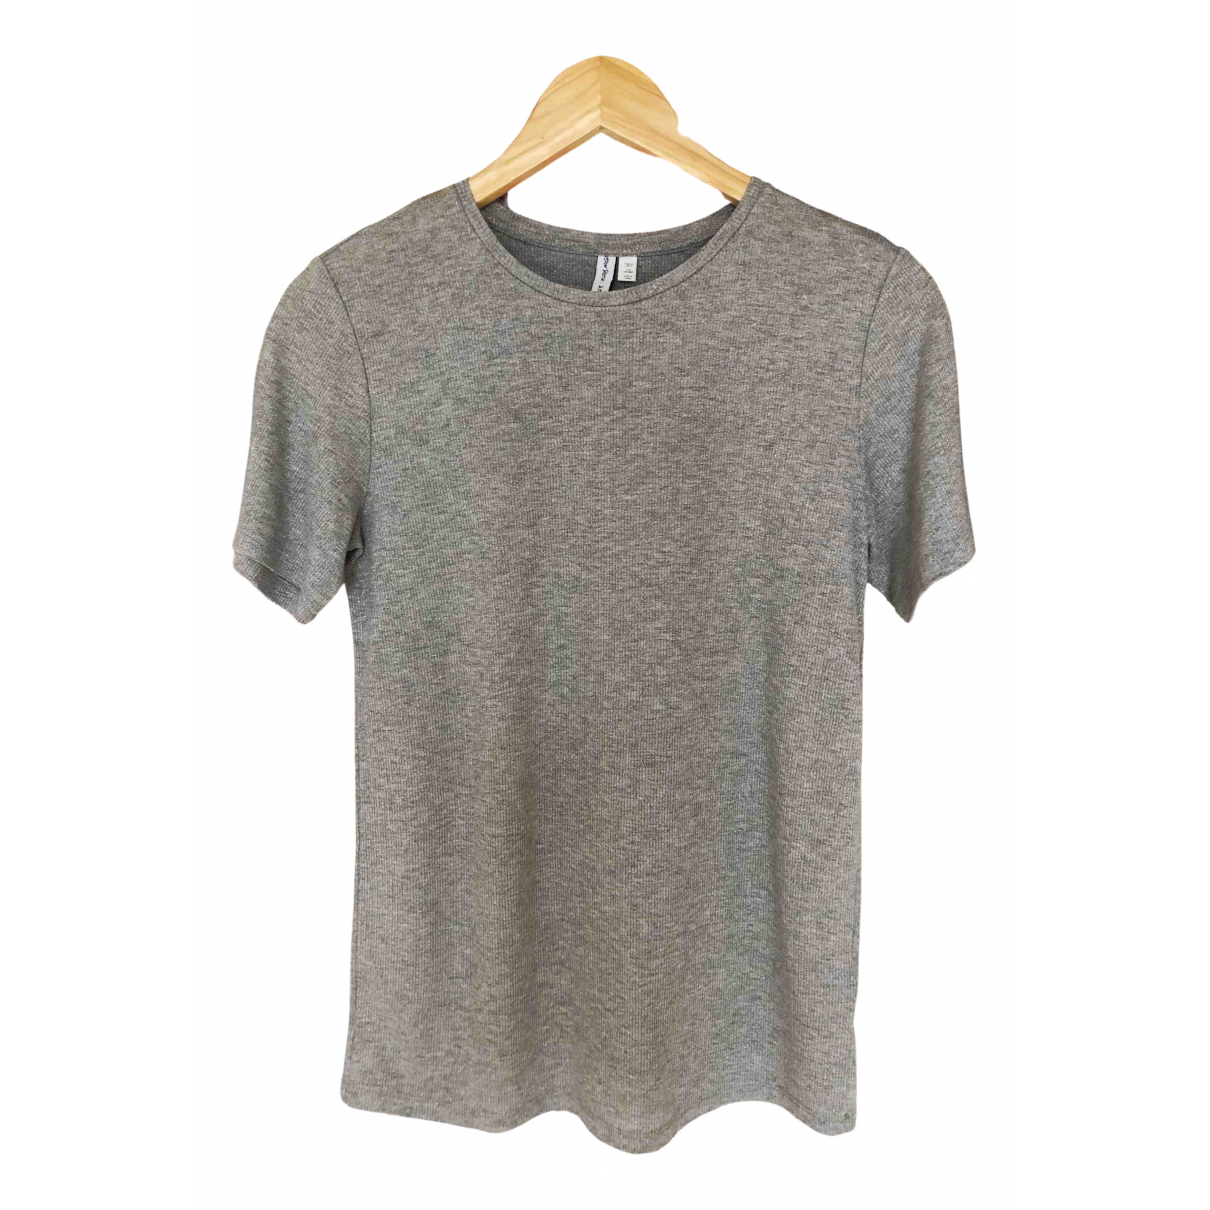 & Stories N Grey  top for Women 4 US